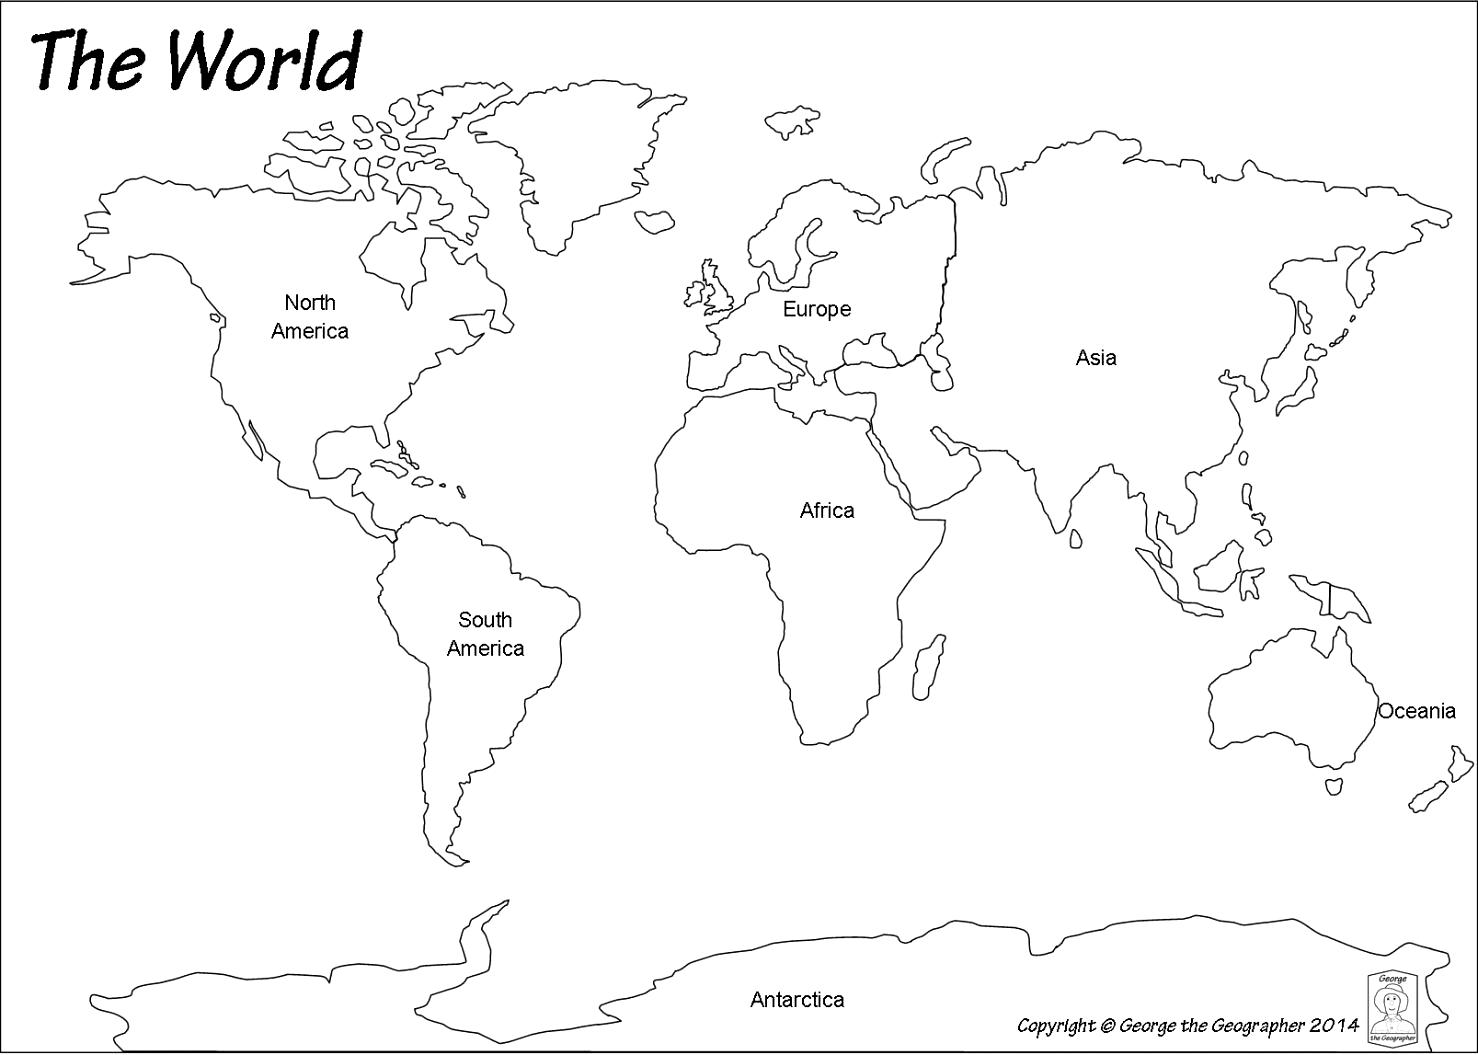 World map clipart black and white 5 clipart station world map clipart black and white 5 gumiabroncs Choice Image